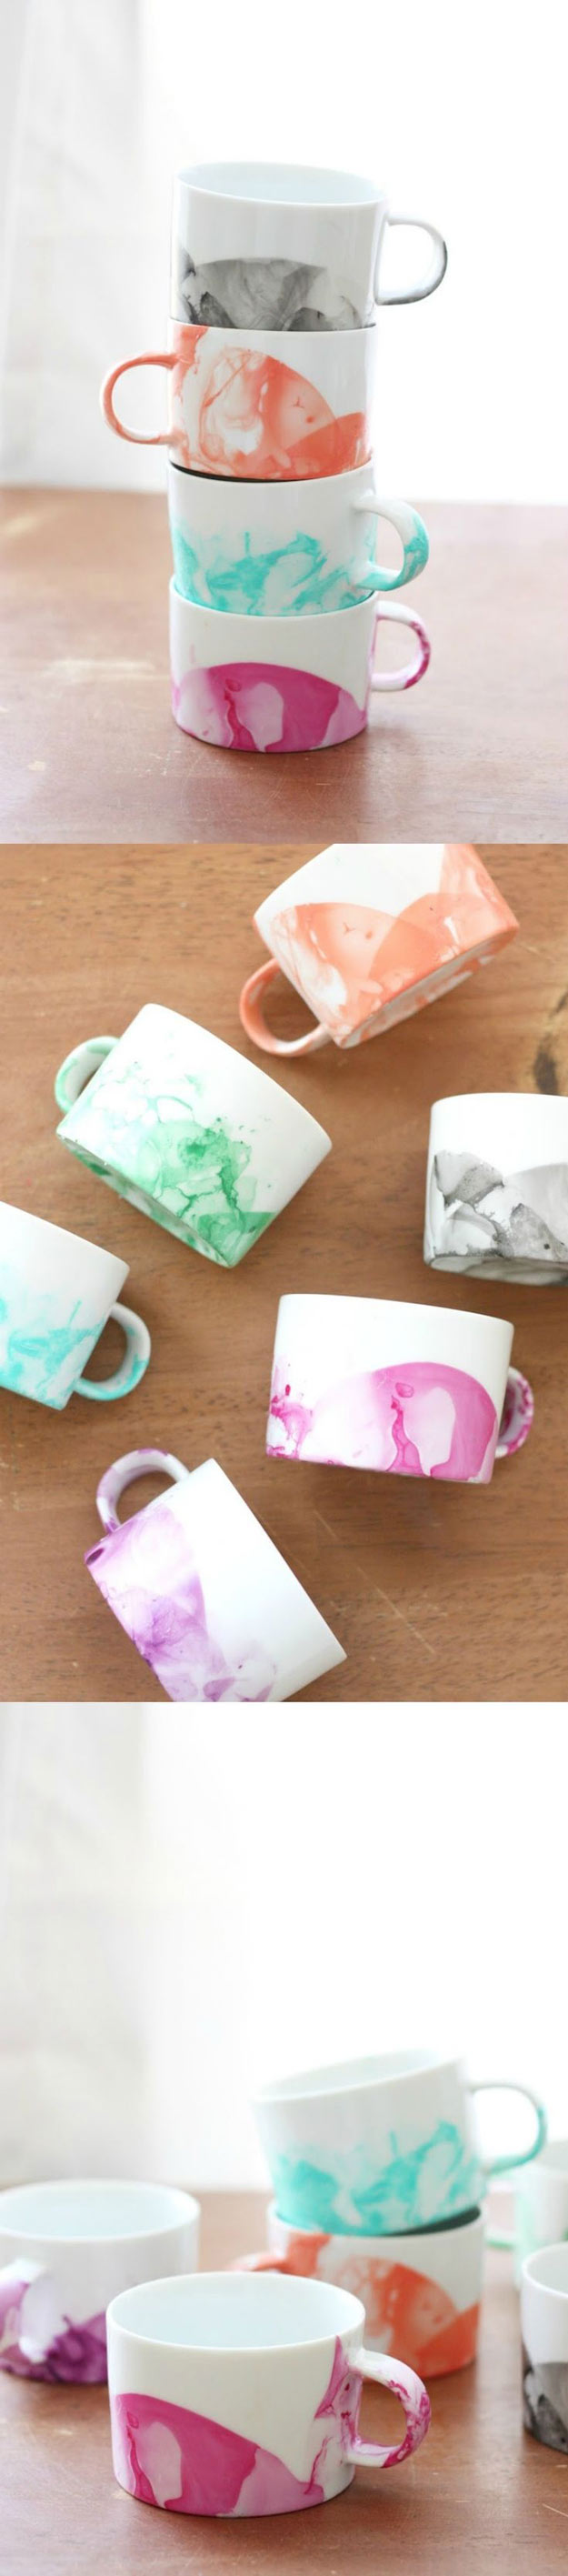 47 fun pinterest crafts that aren 39 t impossible diy for Cute diys to sell